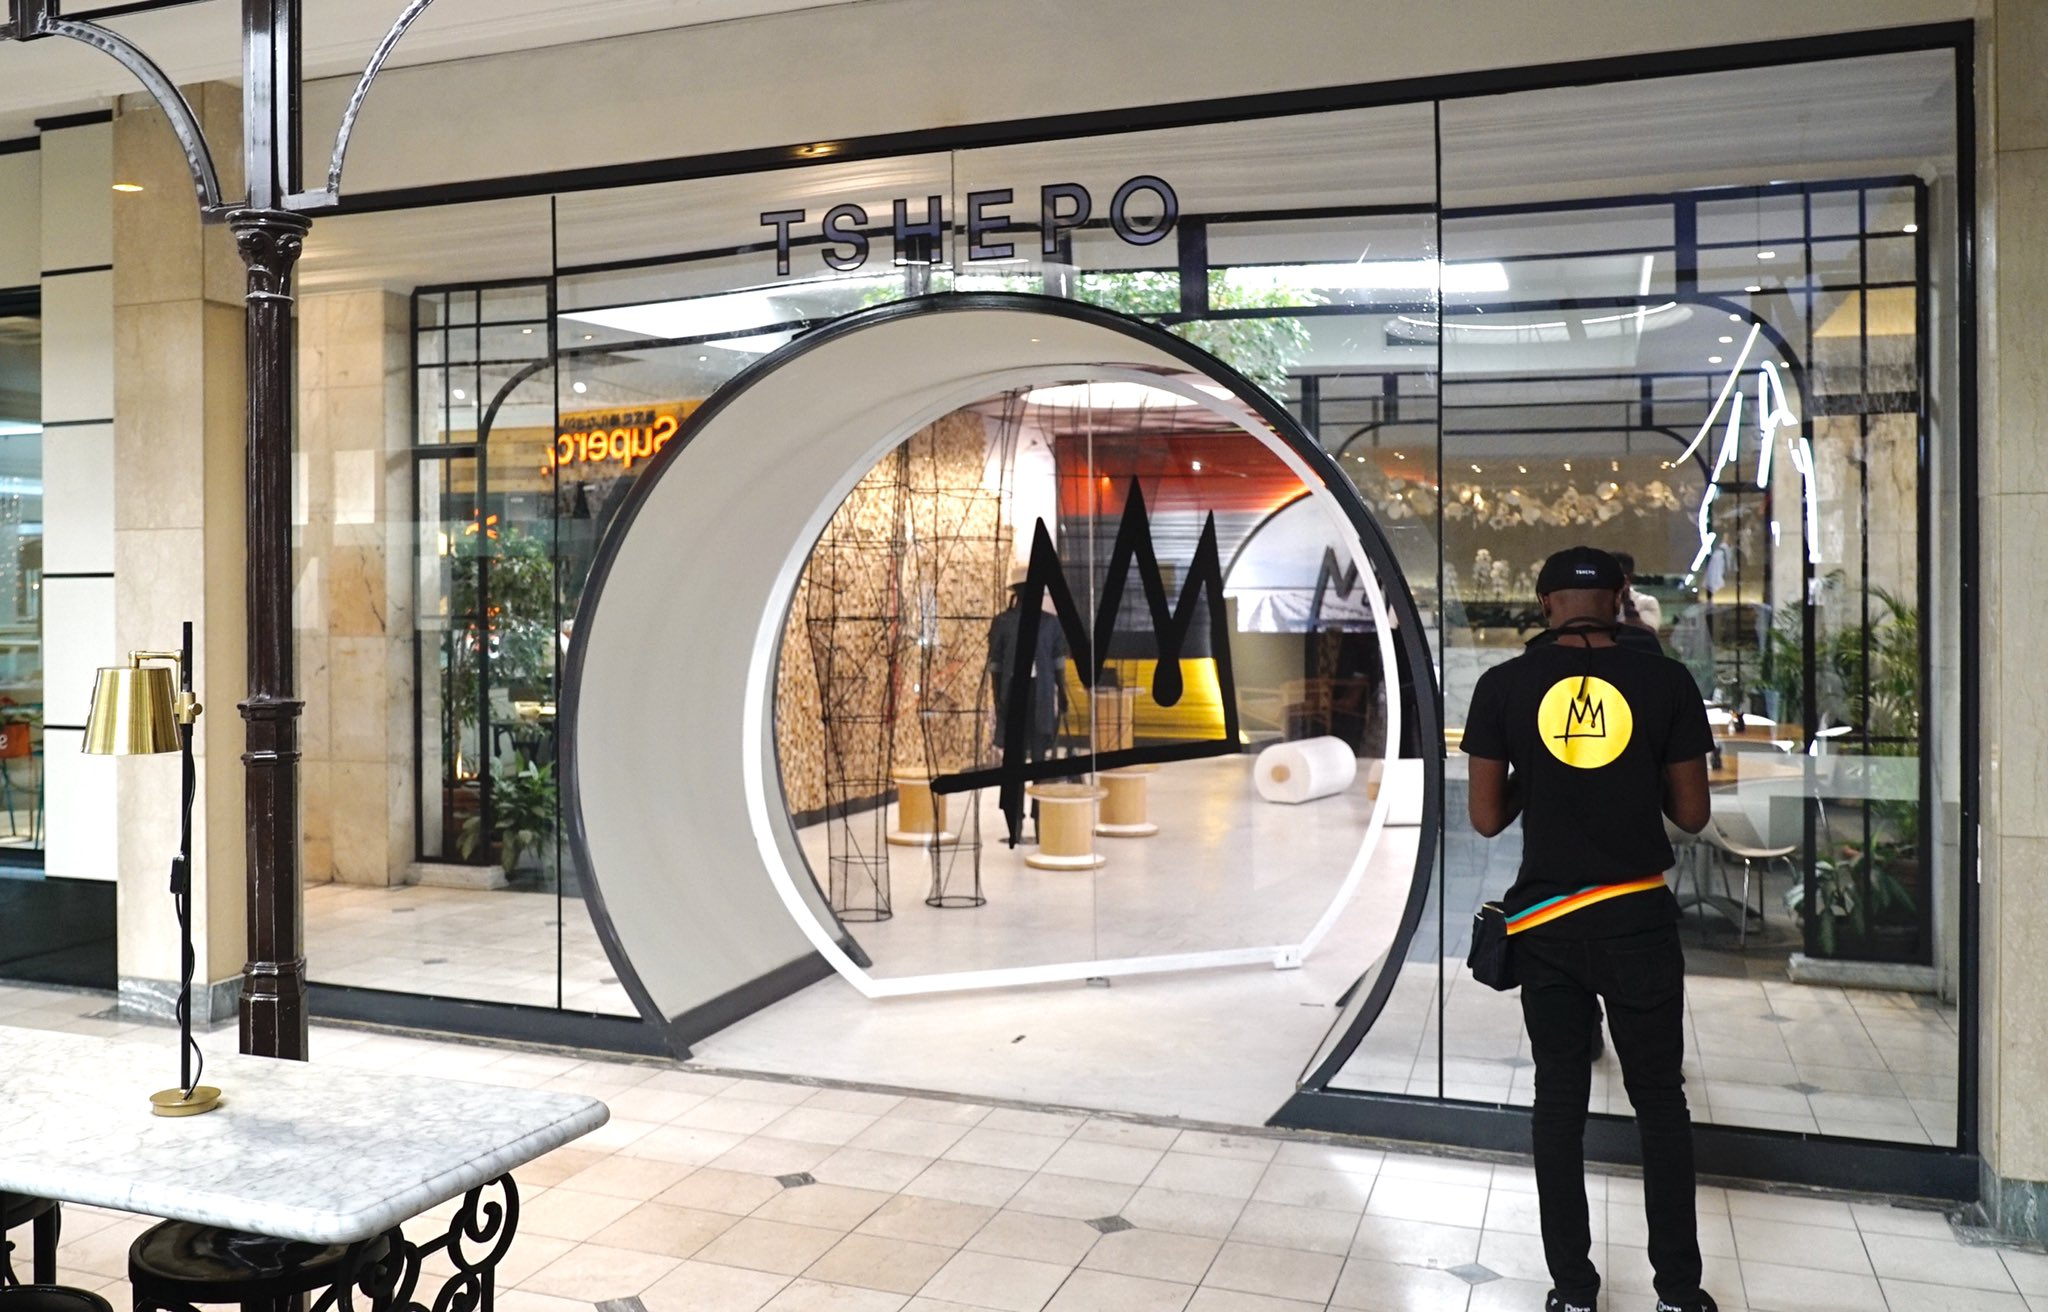 Tshepo Jeans opens New Store in Hyde Park South Africa